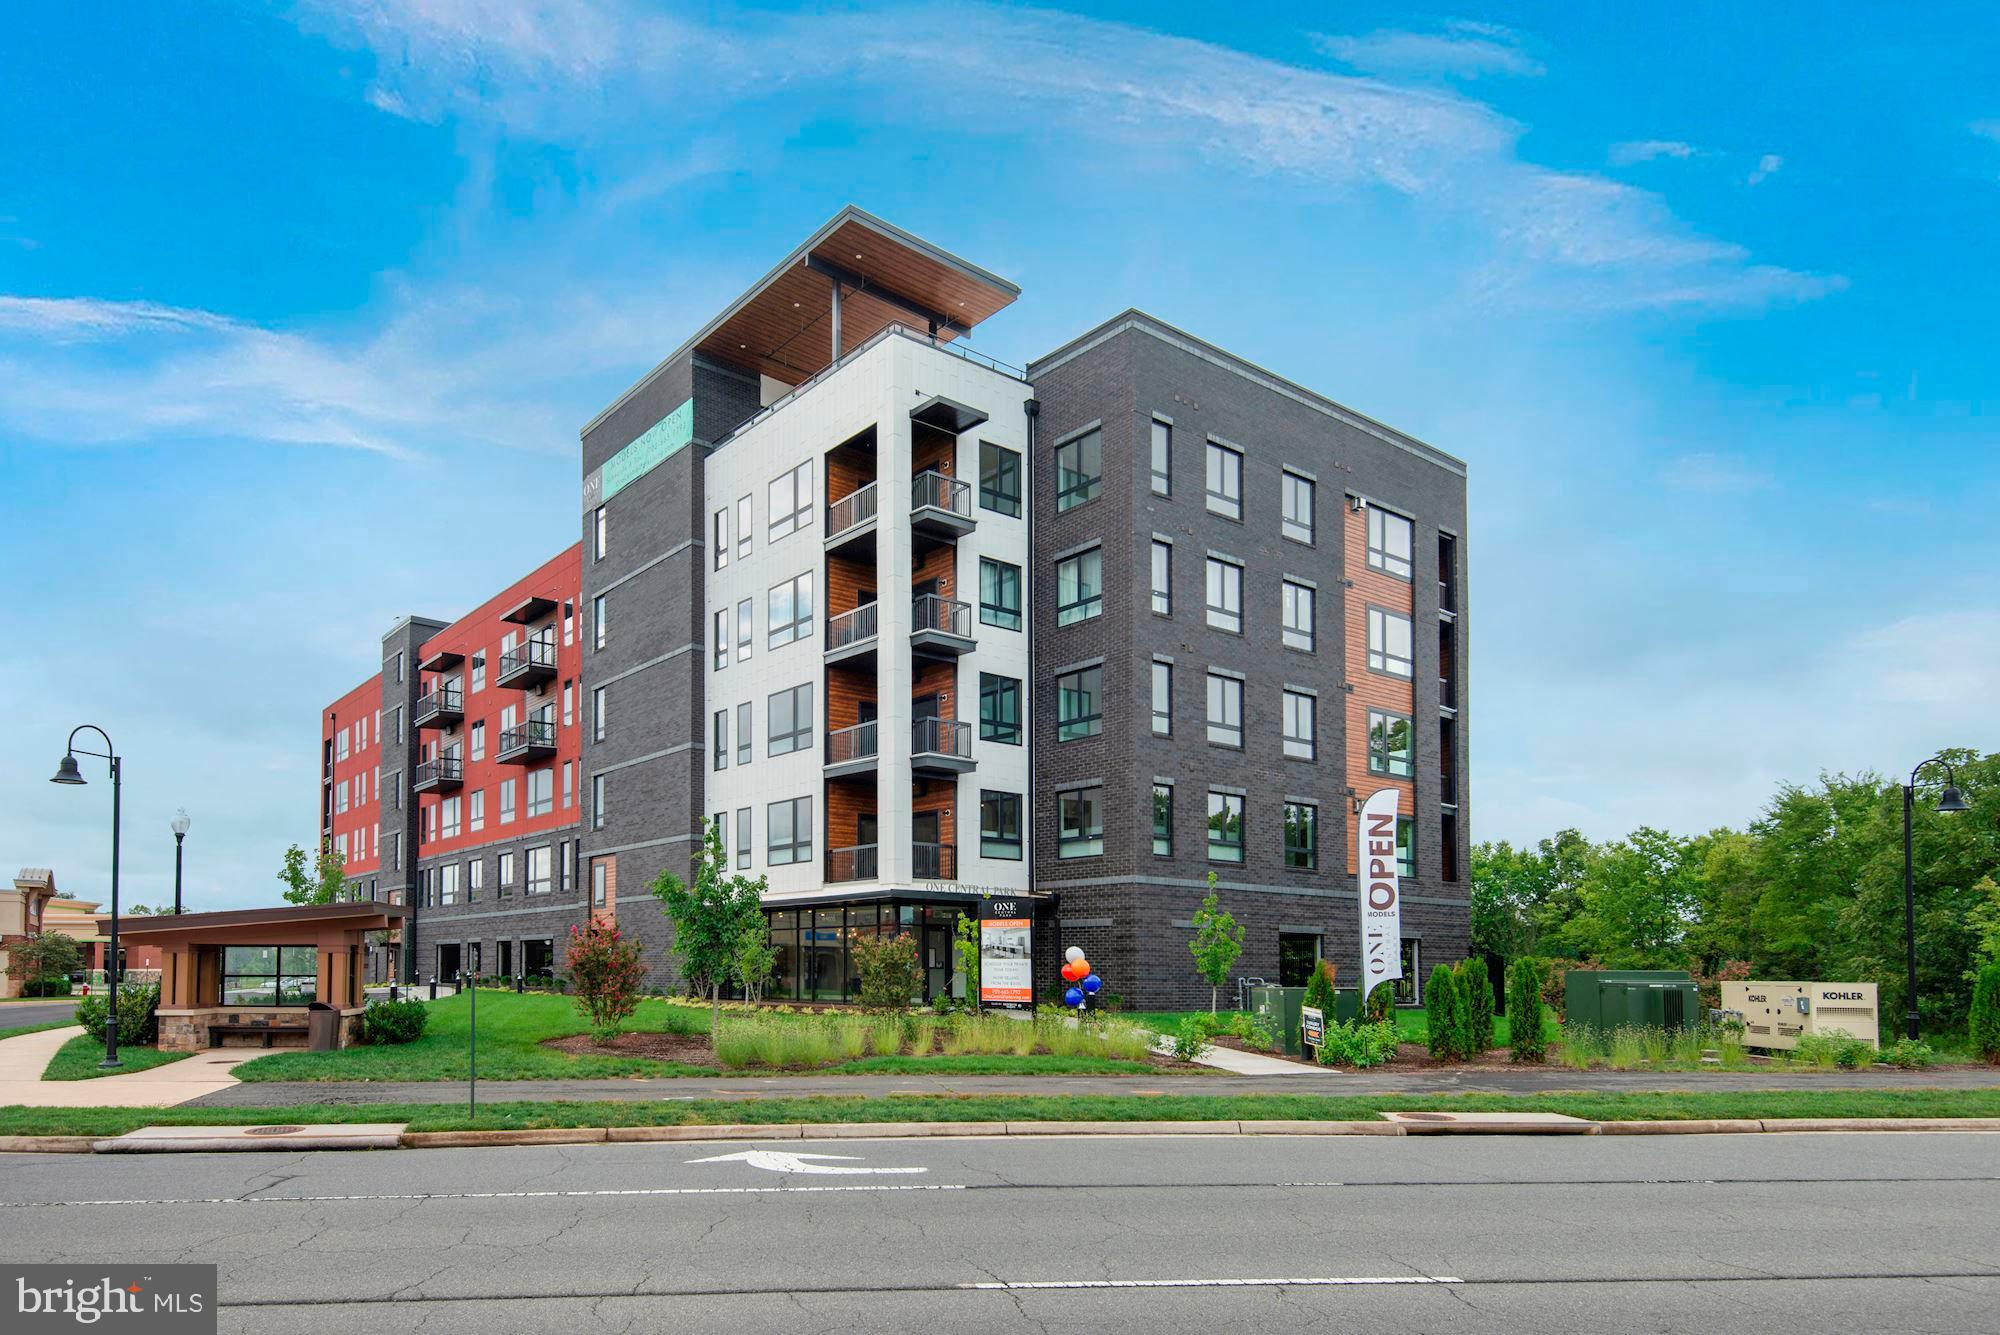 NEW CONSTRUCTION CONDOMINIUMS- Broadway B Plan with 1787 square feet! Spacious 2 bedroom/2.5 bath +